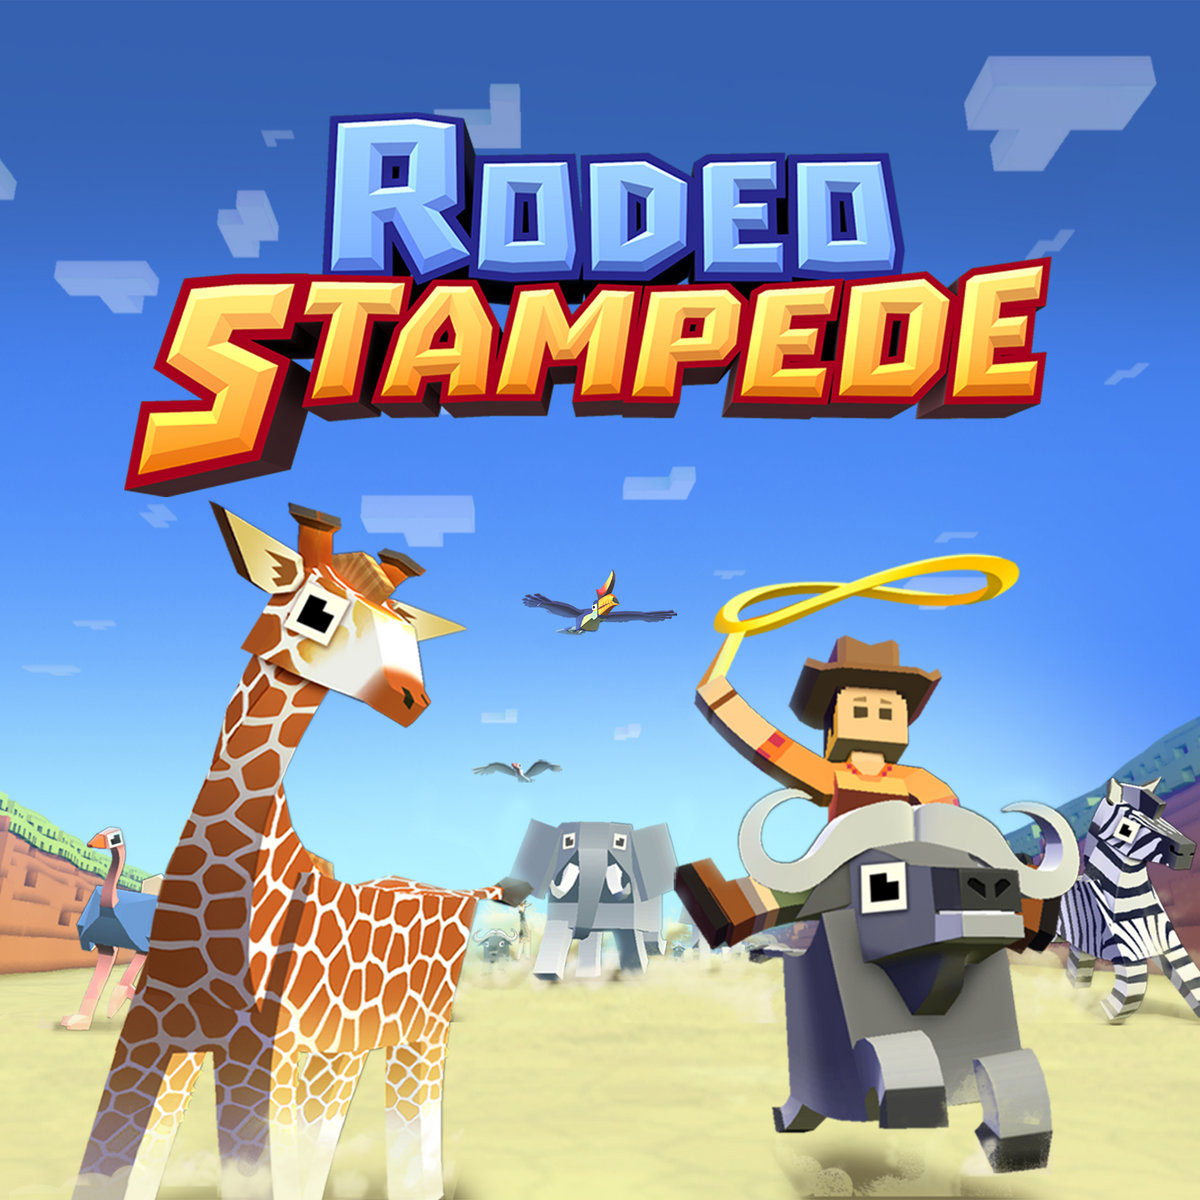 rodeo stampede soundtrack paul kopetko